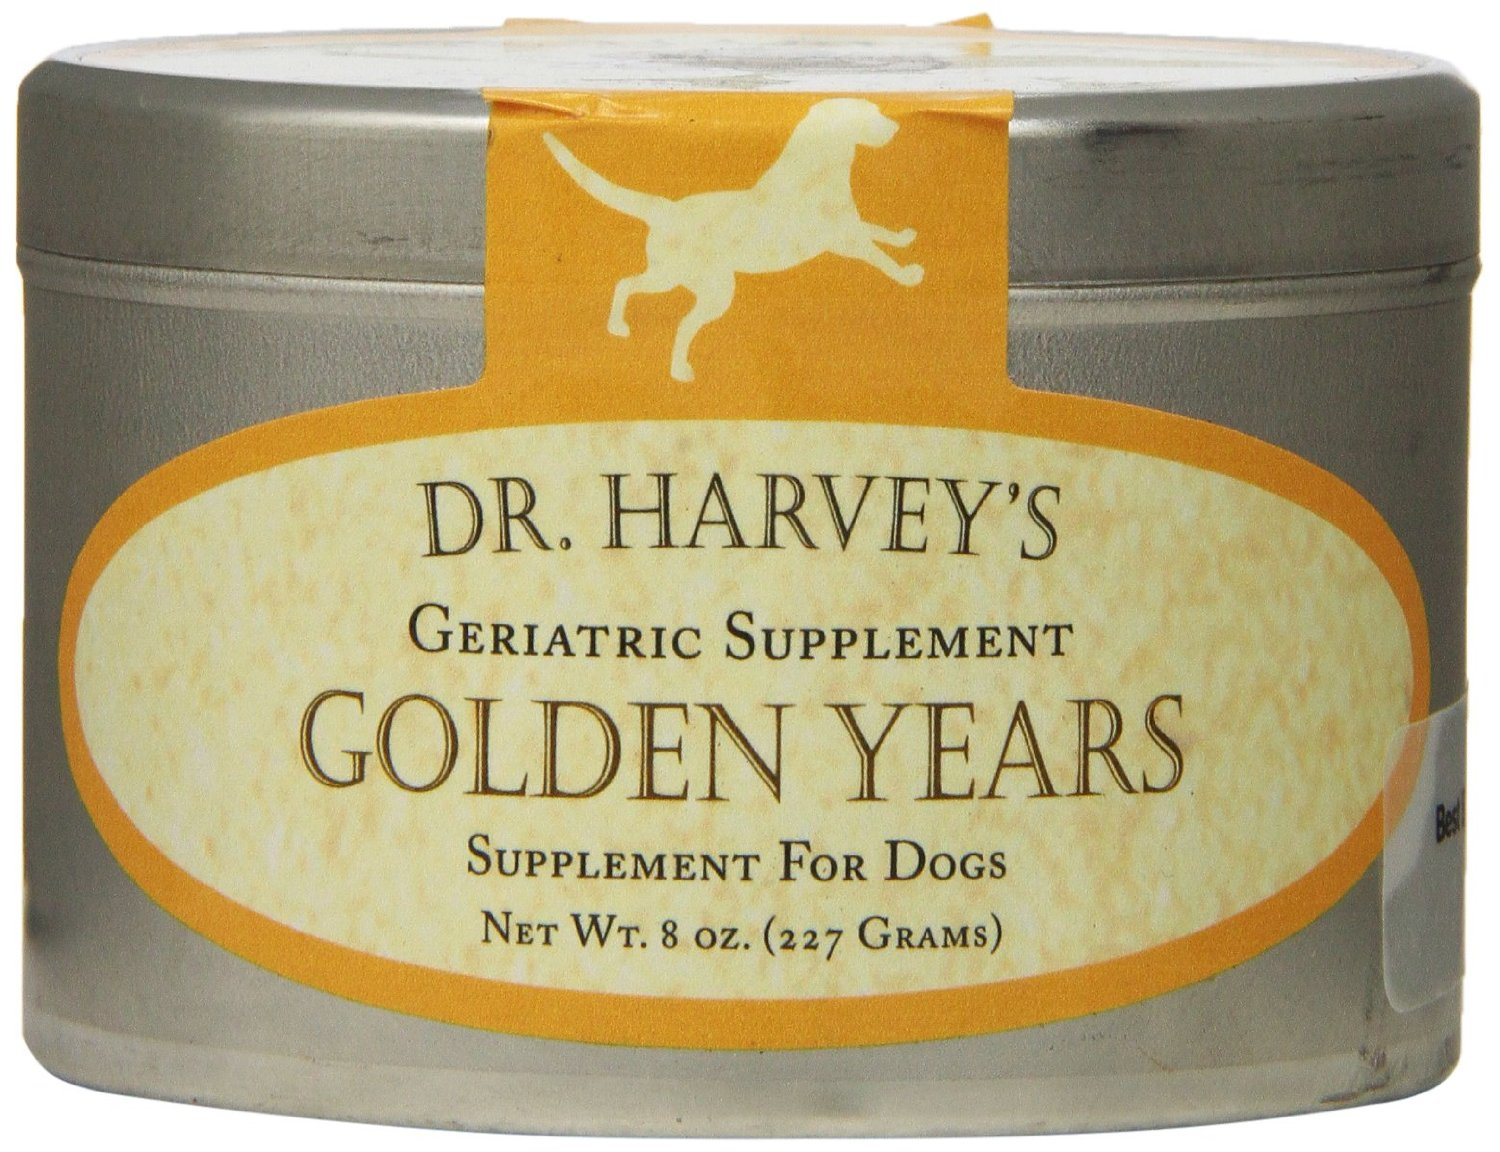 Dr. Harvey's Holistic Dog Supplements and Herbs